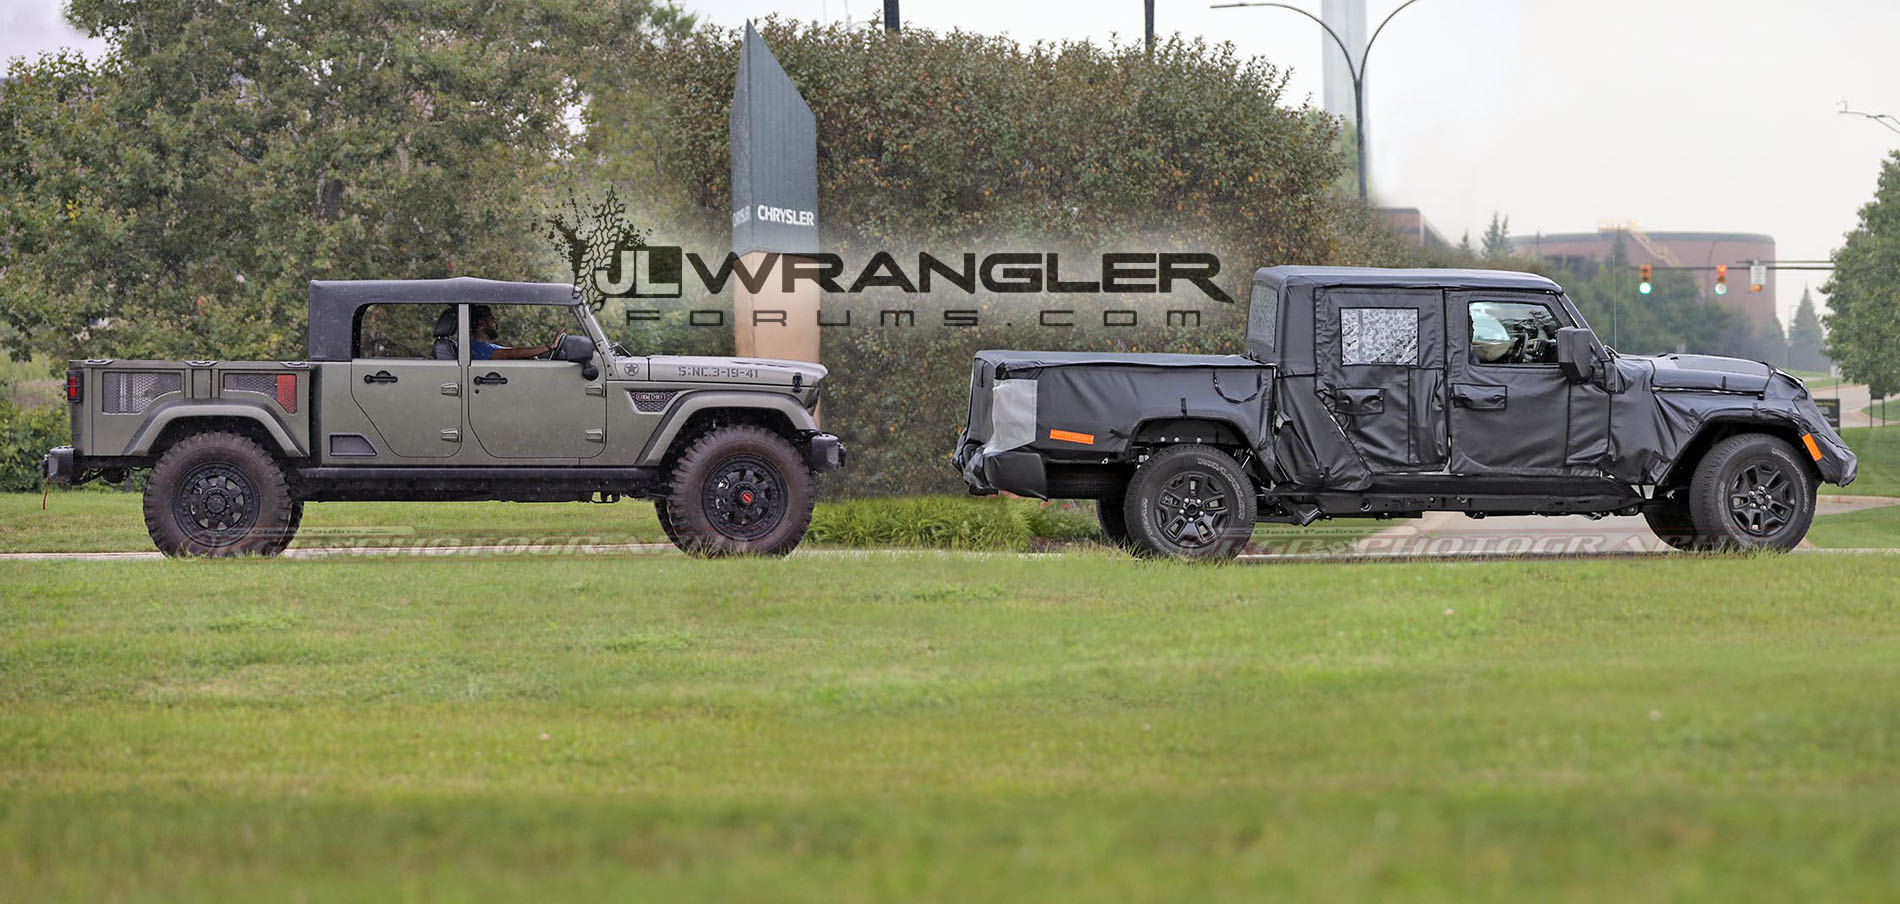 spied   video   jeep scrambler  u2013 see the truck in action